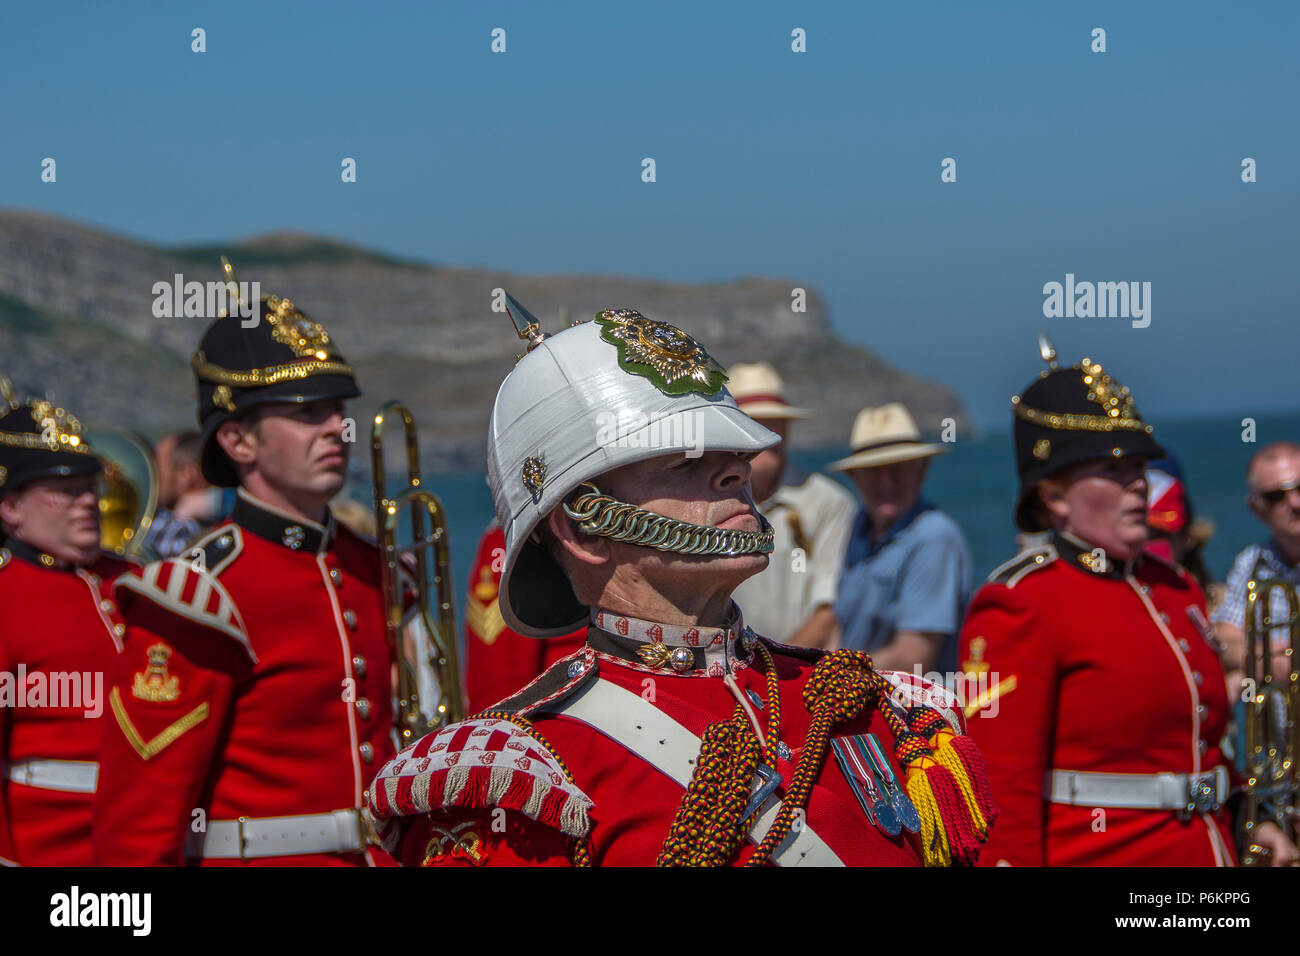 Armed Forces Day 2018 in Llandudno. Marching solders in red uniforms. A very hot day. soldiers sweating in uniform. - Stock Image